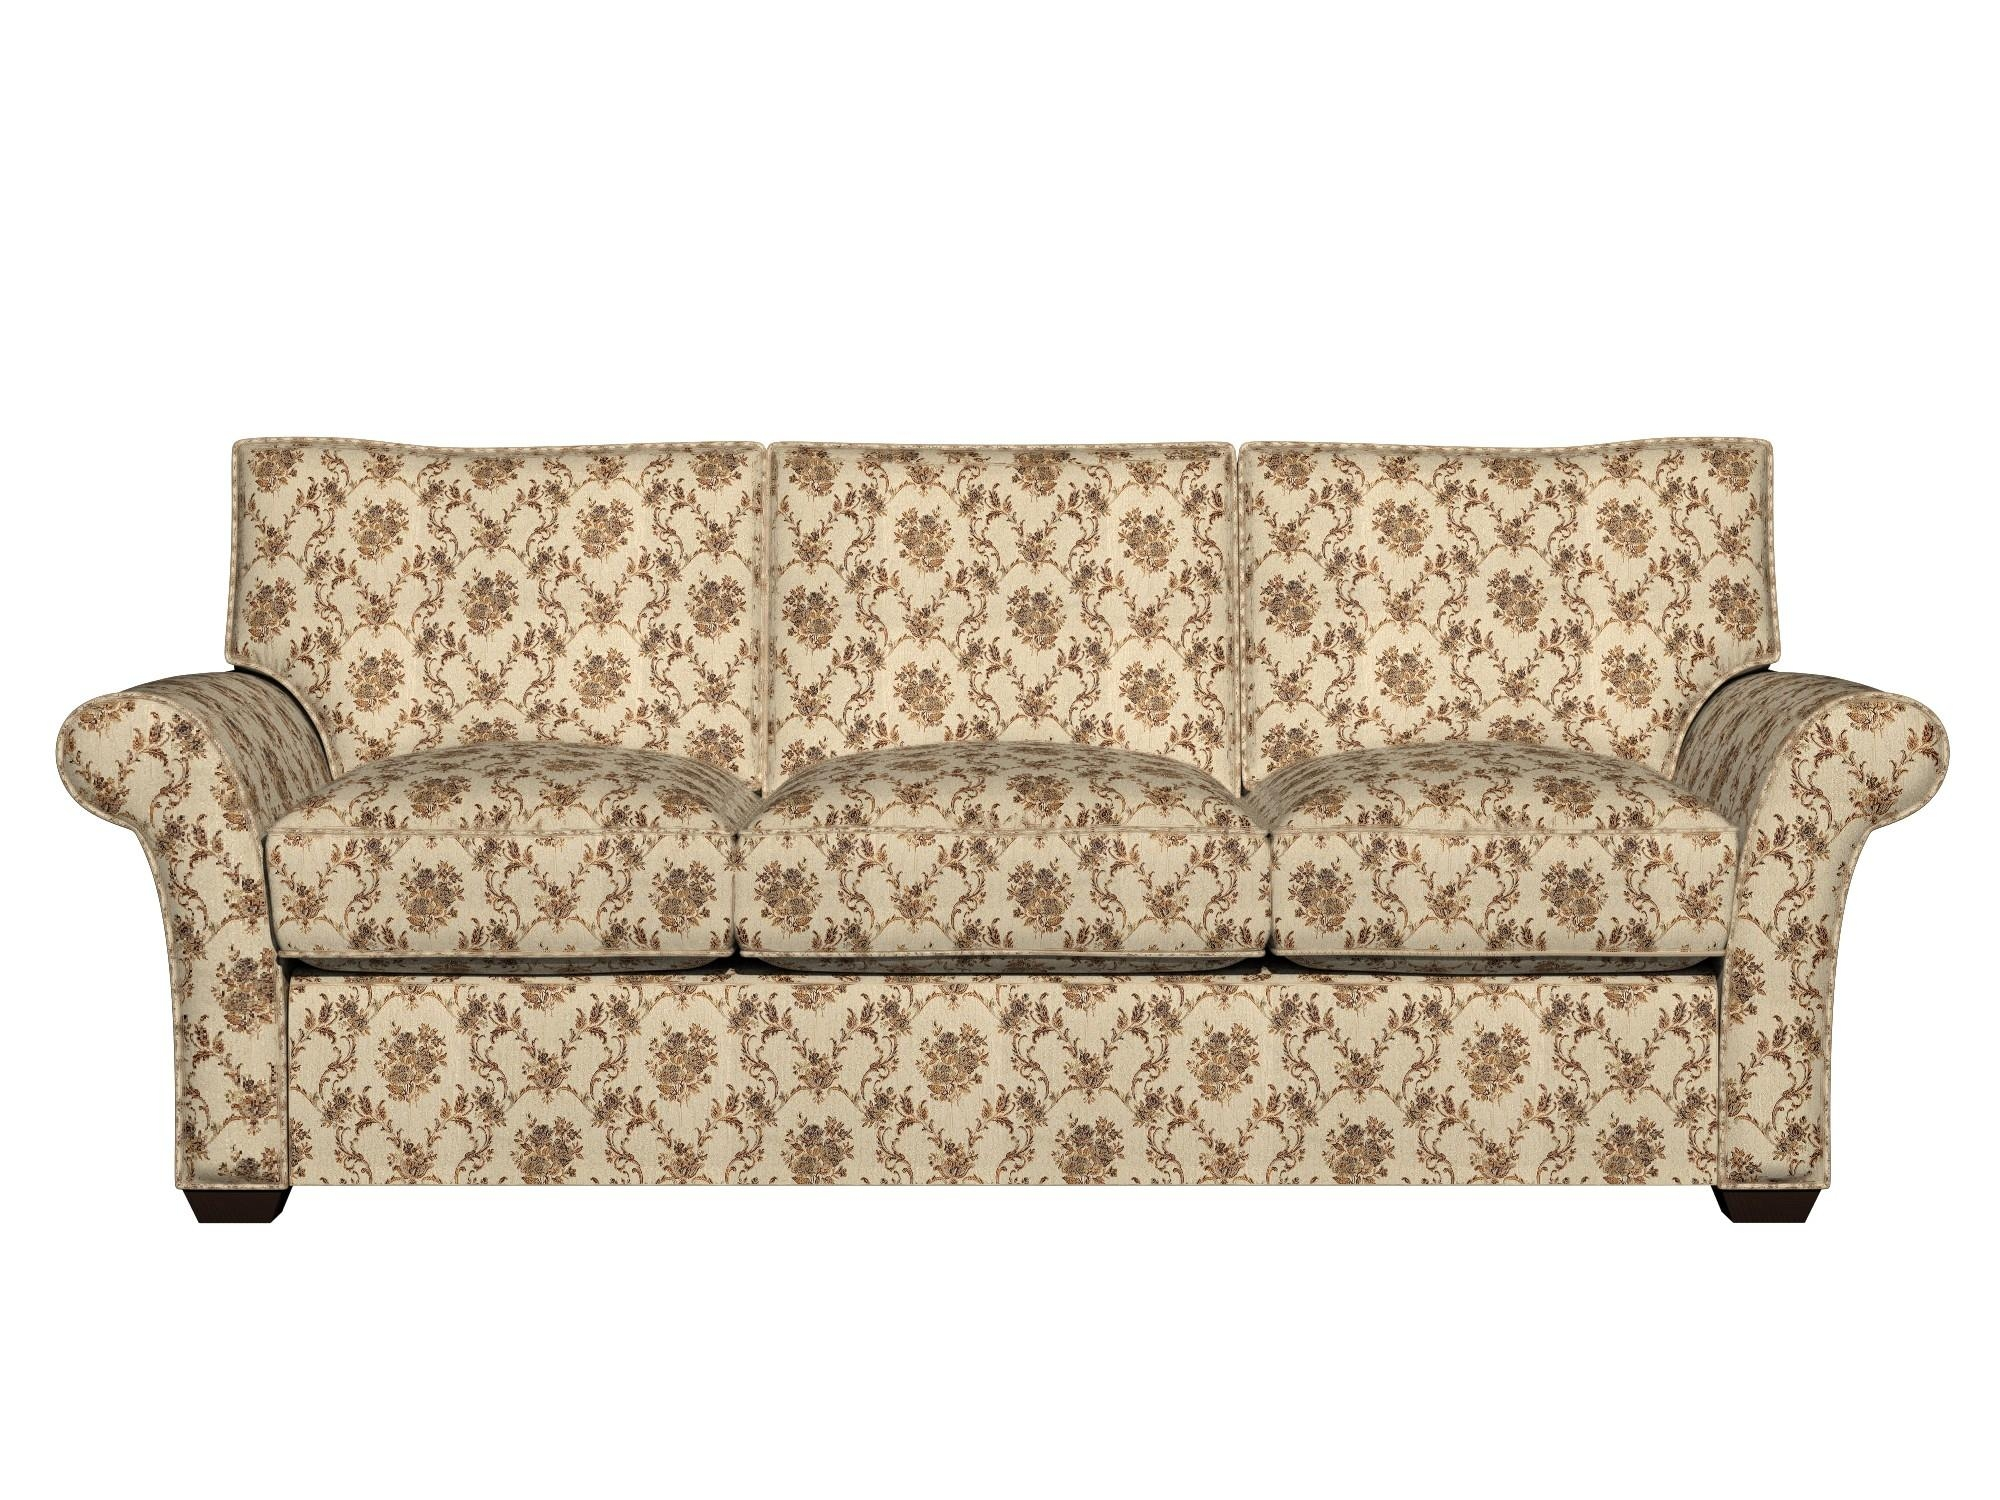 A0014E Beige, Gold, Brown And Ivory Floral Brocade Upholstery With Regard To Brocade Sofas (View 19 of 20)